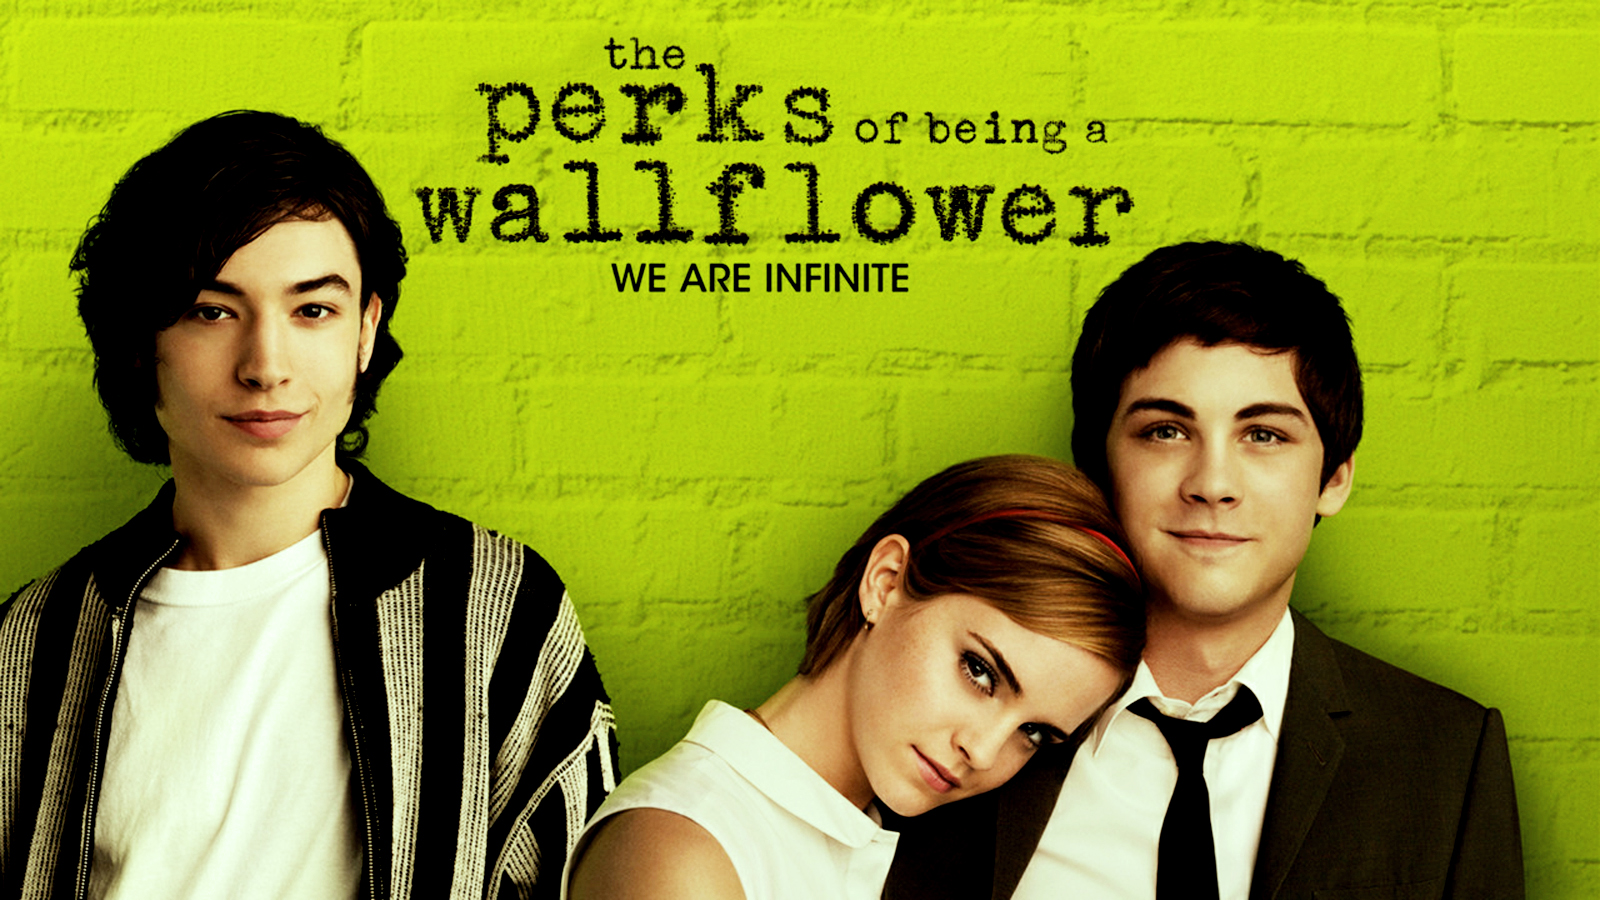 7 reasons to love The Perks of Being a Wallflower